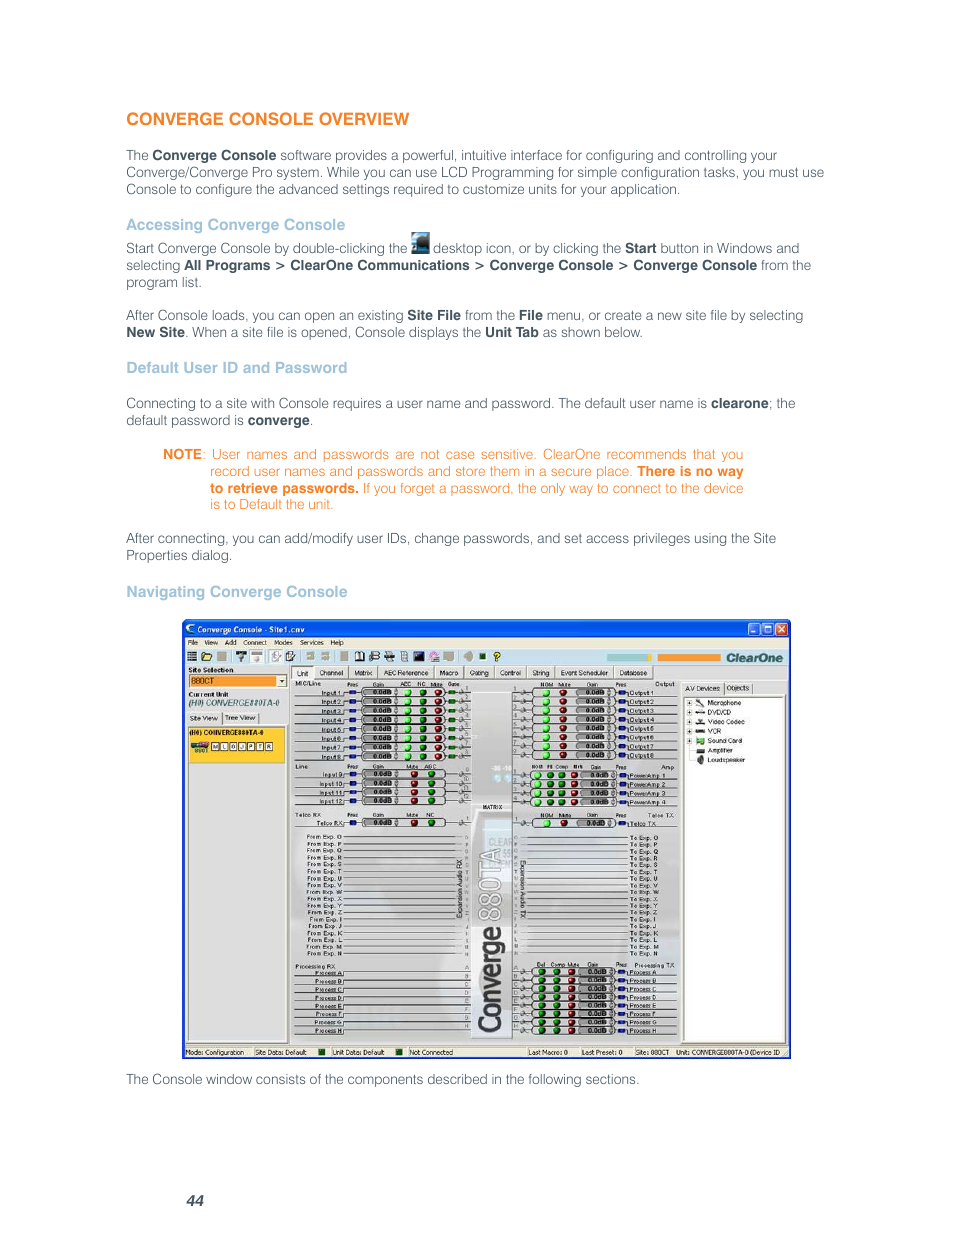 ClearOne comm CONVERGE SR 1212 User Manual   Page 49 / 320